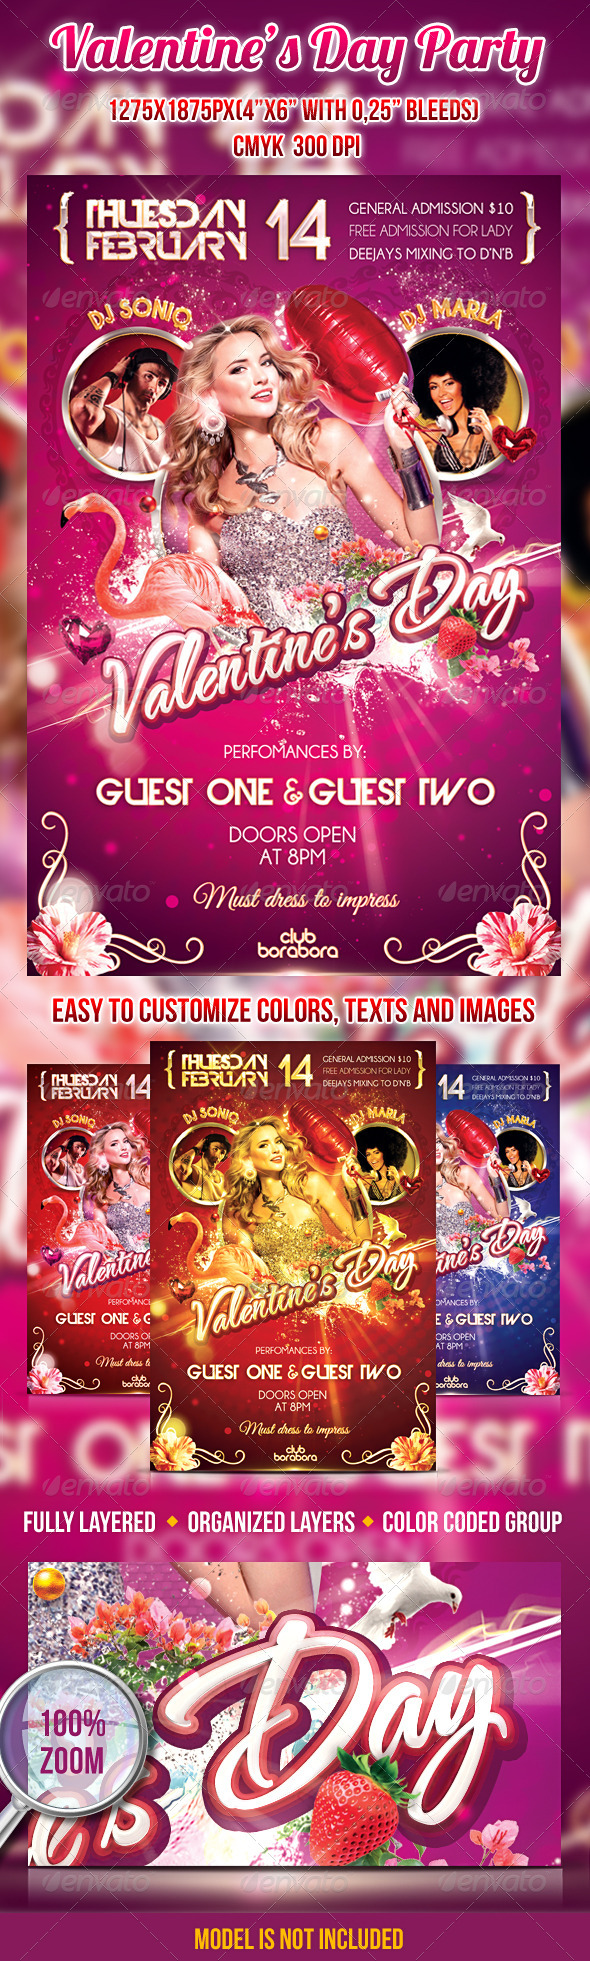 Valentine's Day Party Psd Flyer Template - Clubs & Parties Events